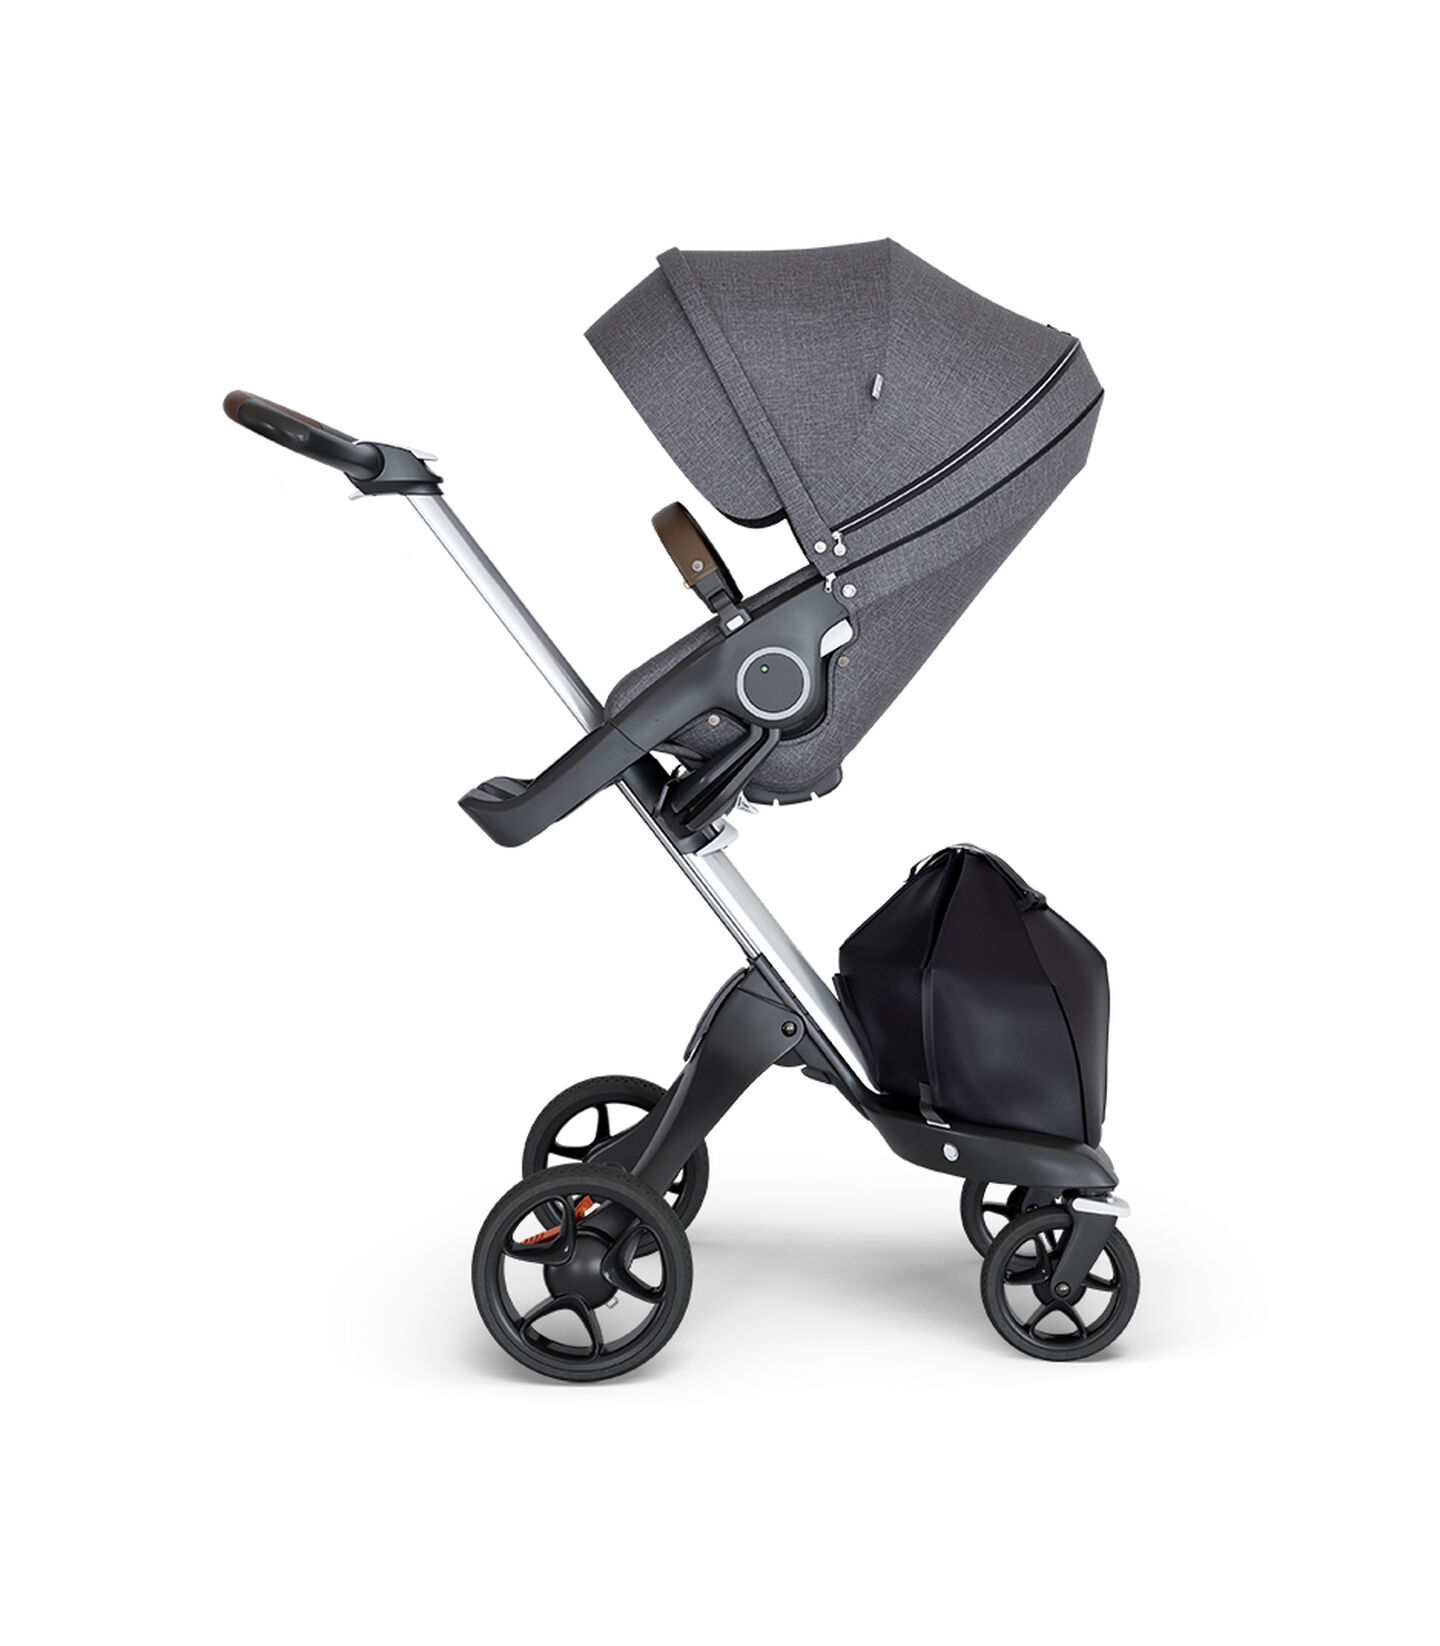 Stokke® Xplory® wtih Silver Chassis and Leatherette Brown handle. Stokke® Stroller Seat Black Melange.